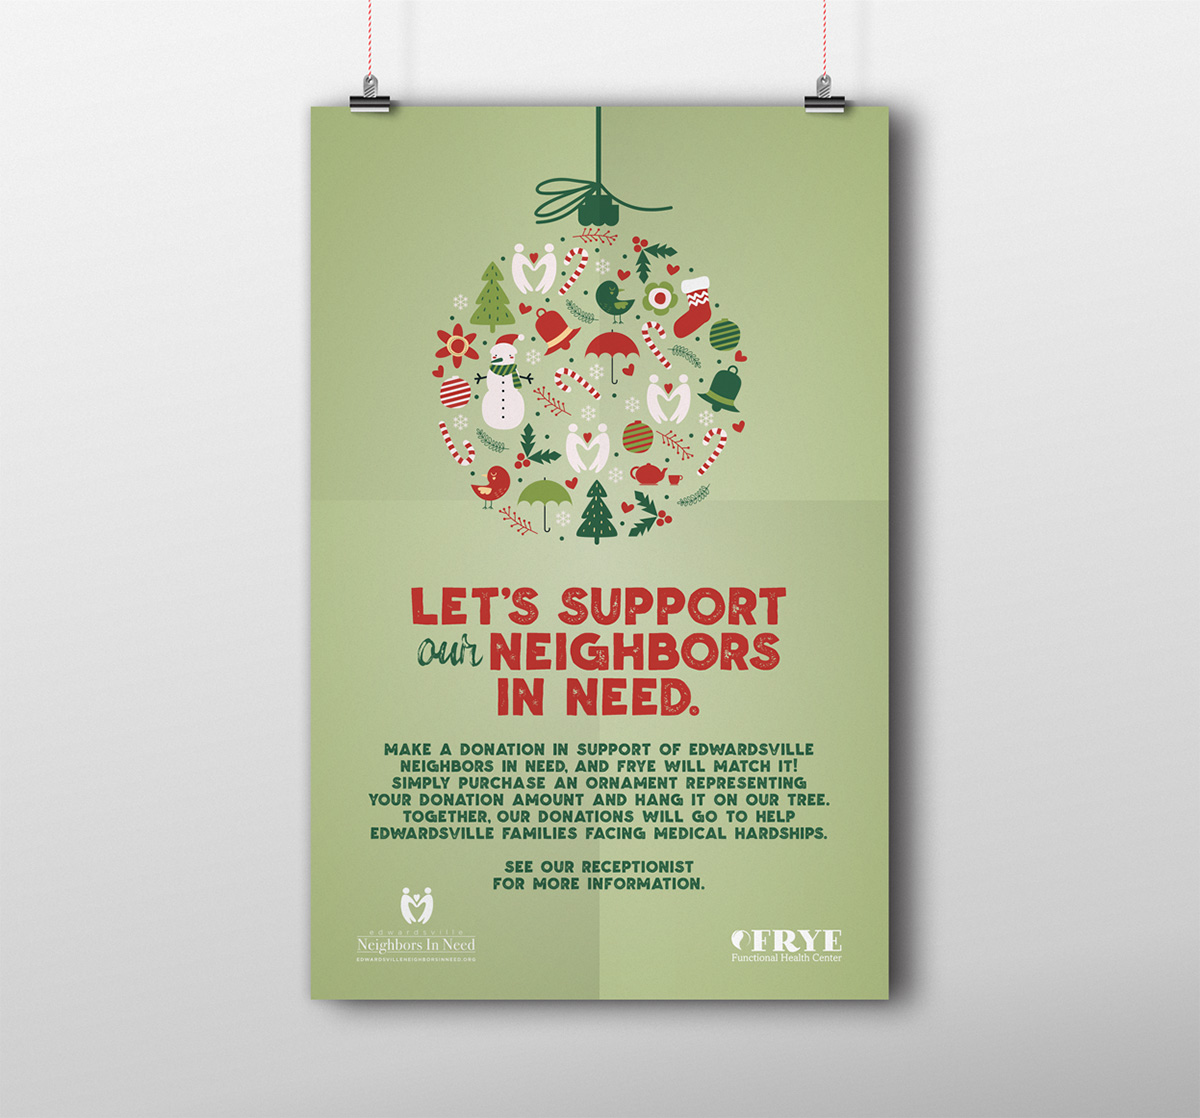 Edwardsville Neighbors Christmas fundraiser poster